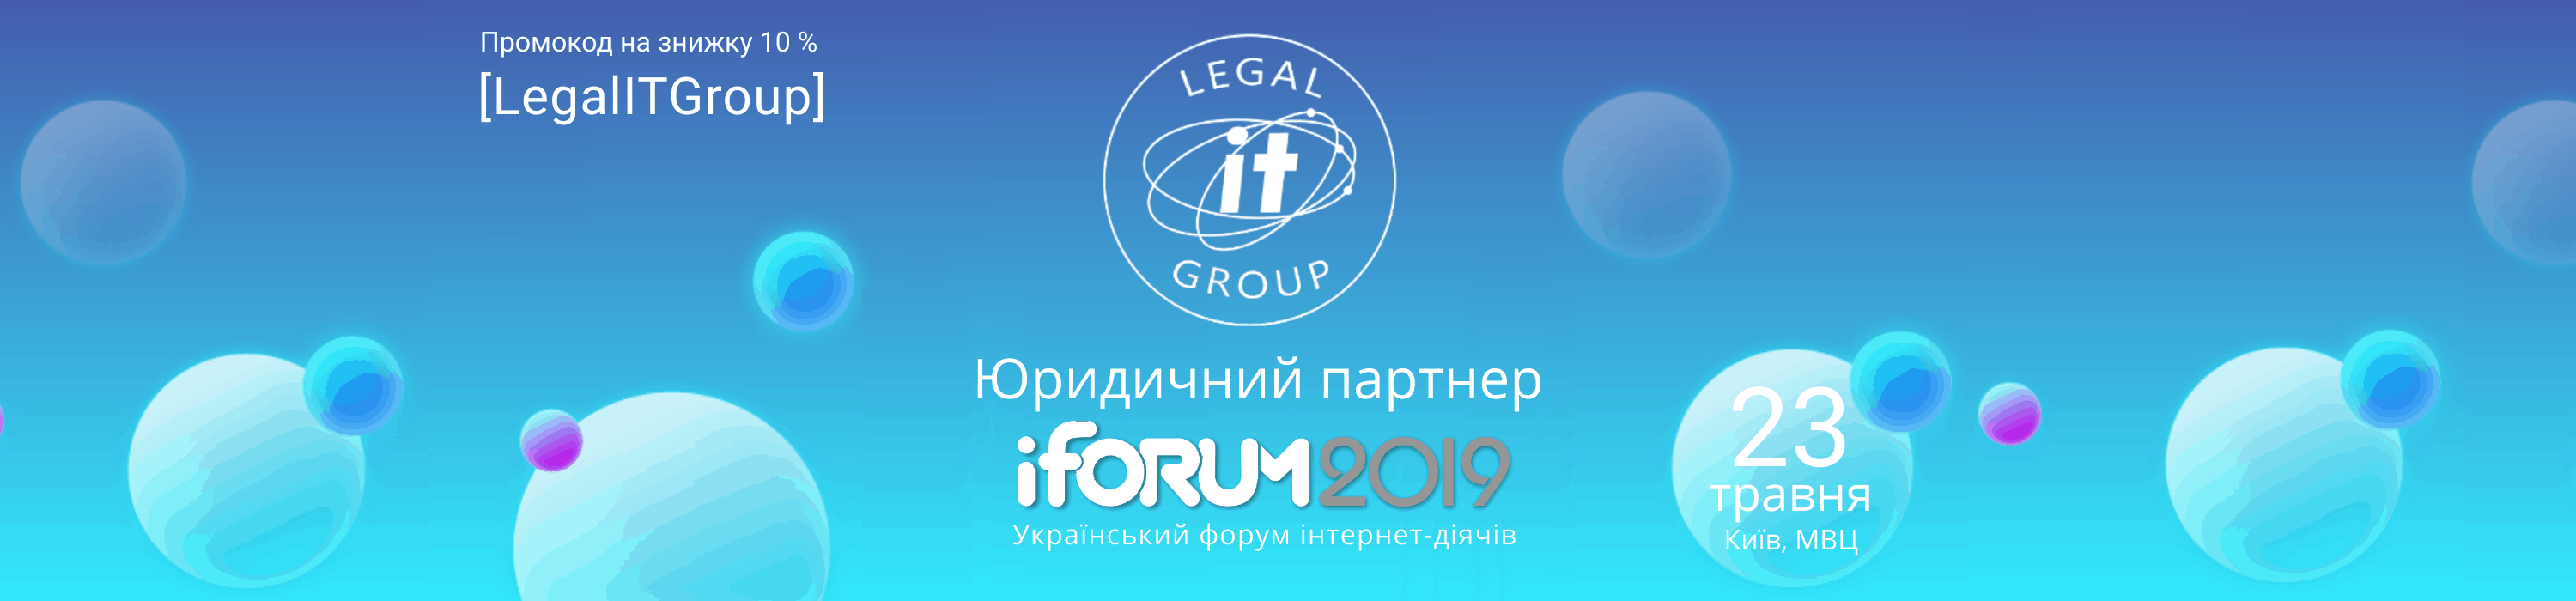 юридичний партнер Iforum - Legal IT Group